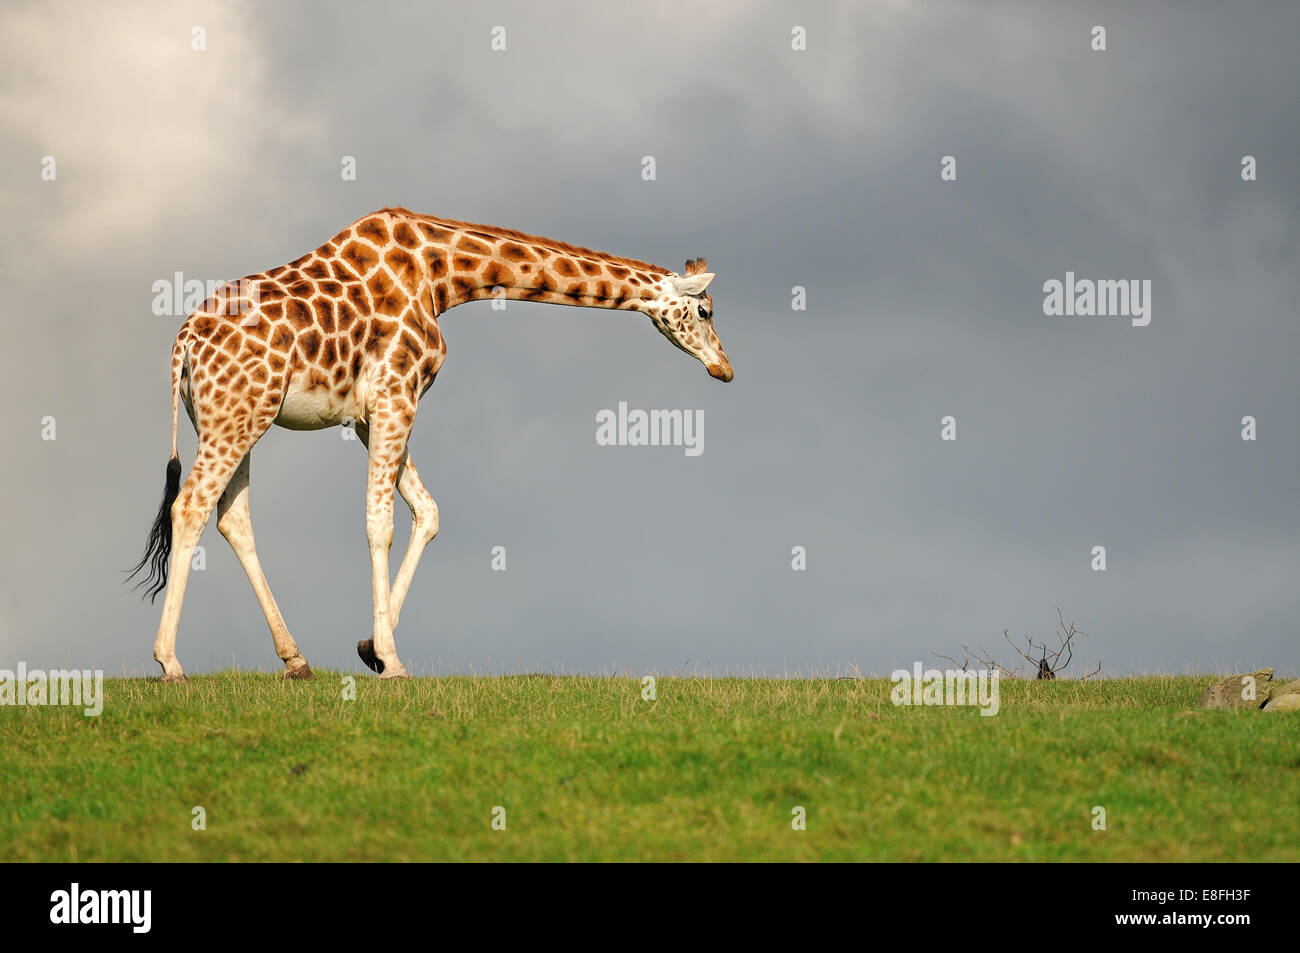 Giraffe walking against dark sky Stock Photo